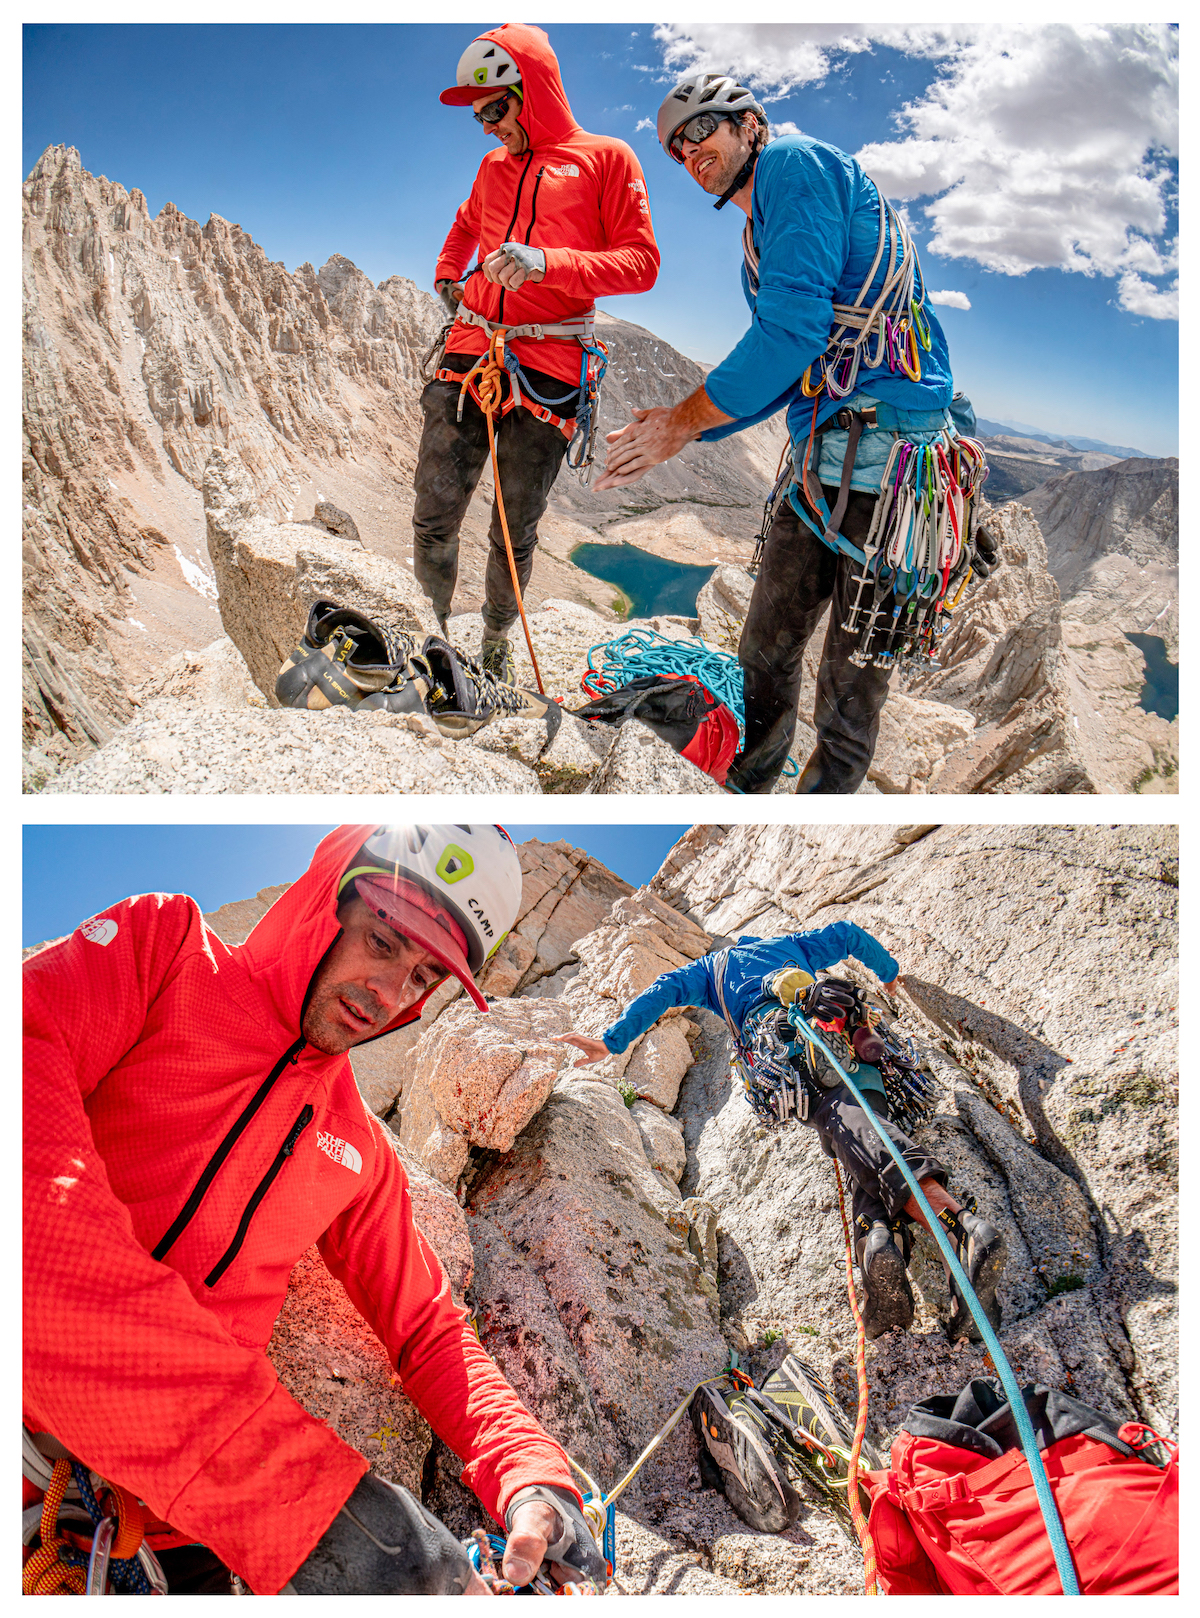 The smooth trigger action and the sticky-rubber like traction of the soft alloy lobes are just two components that make the Alien Revolution a great choice for mountain missions. Dave Allfrey and Luke Holloway plug and play a few ridges south of Mt. Whitney (Tumanguya), California. [Photo] Tad McCrea